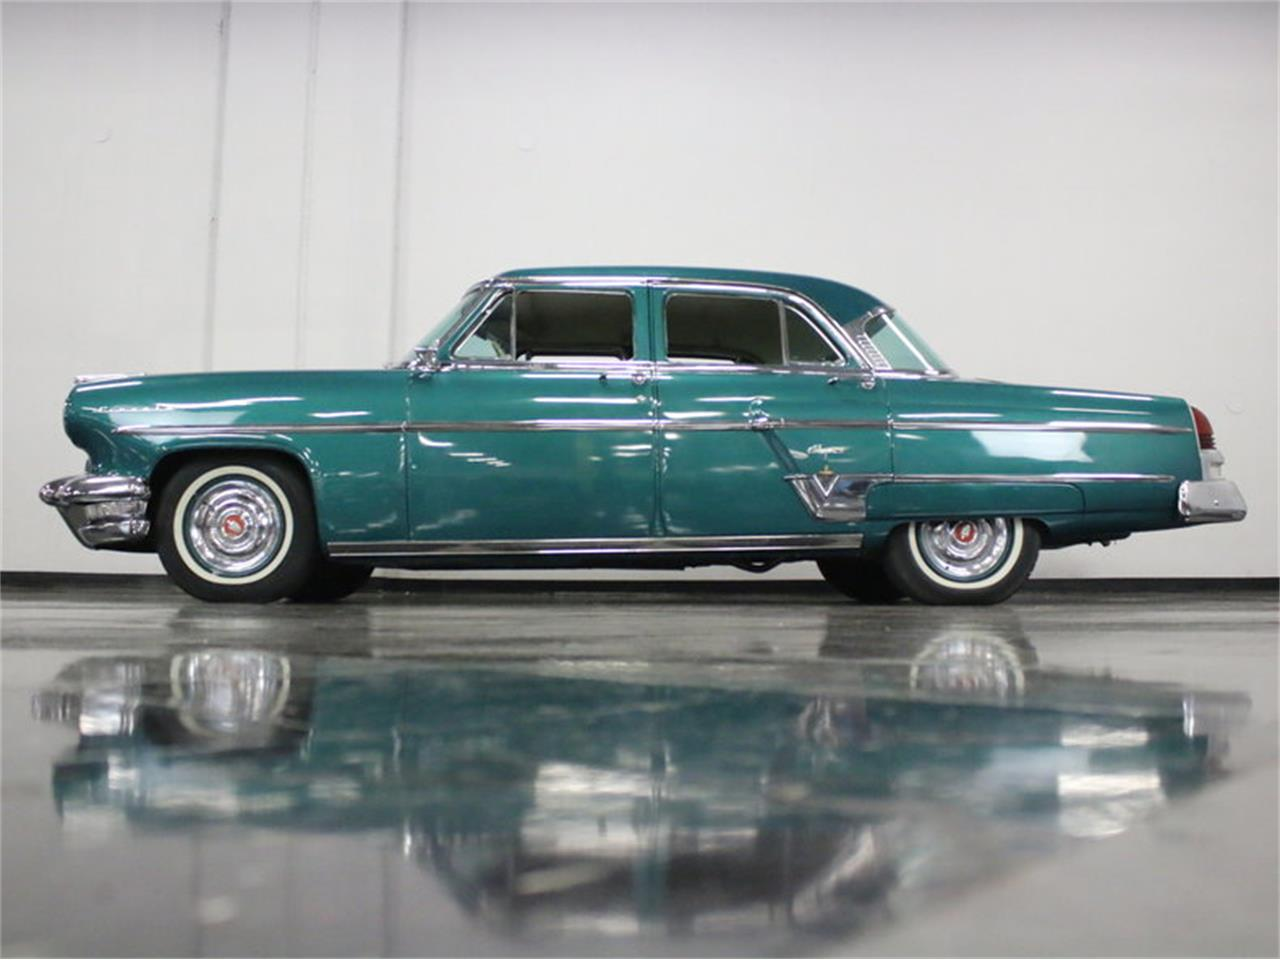 Large Picture of 1954 Lincoln Capri located in Texas - $13,995.00 Offered by Streetside Classics - Dallas / Fort Worth - KKSU